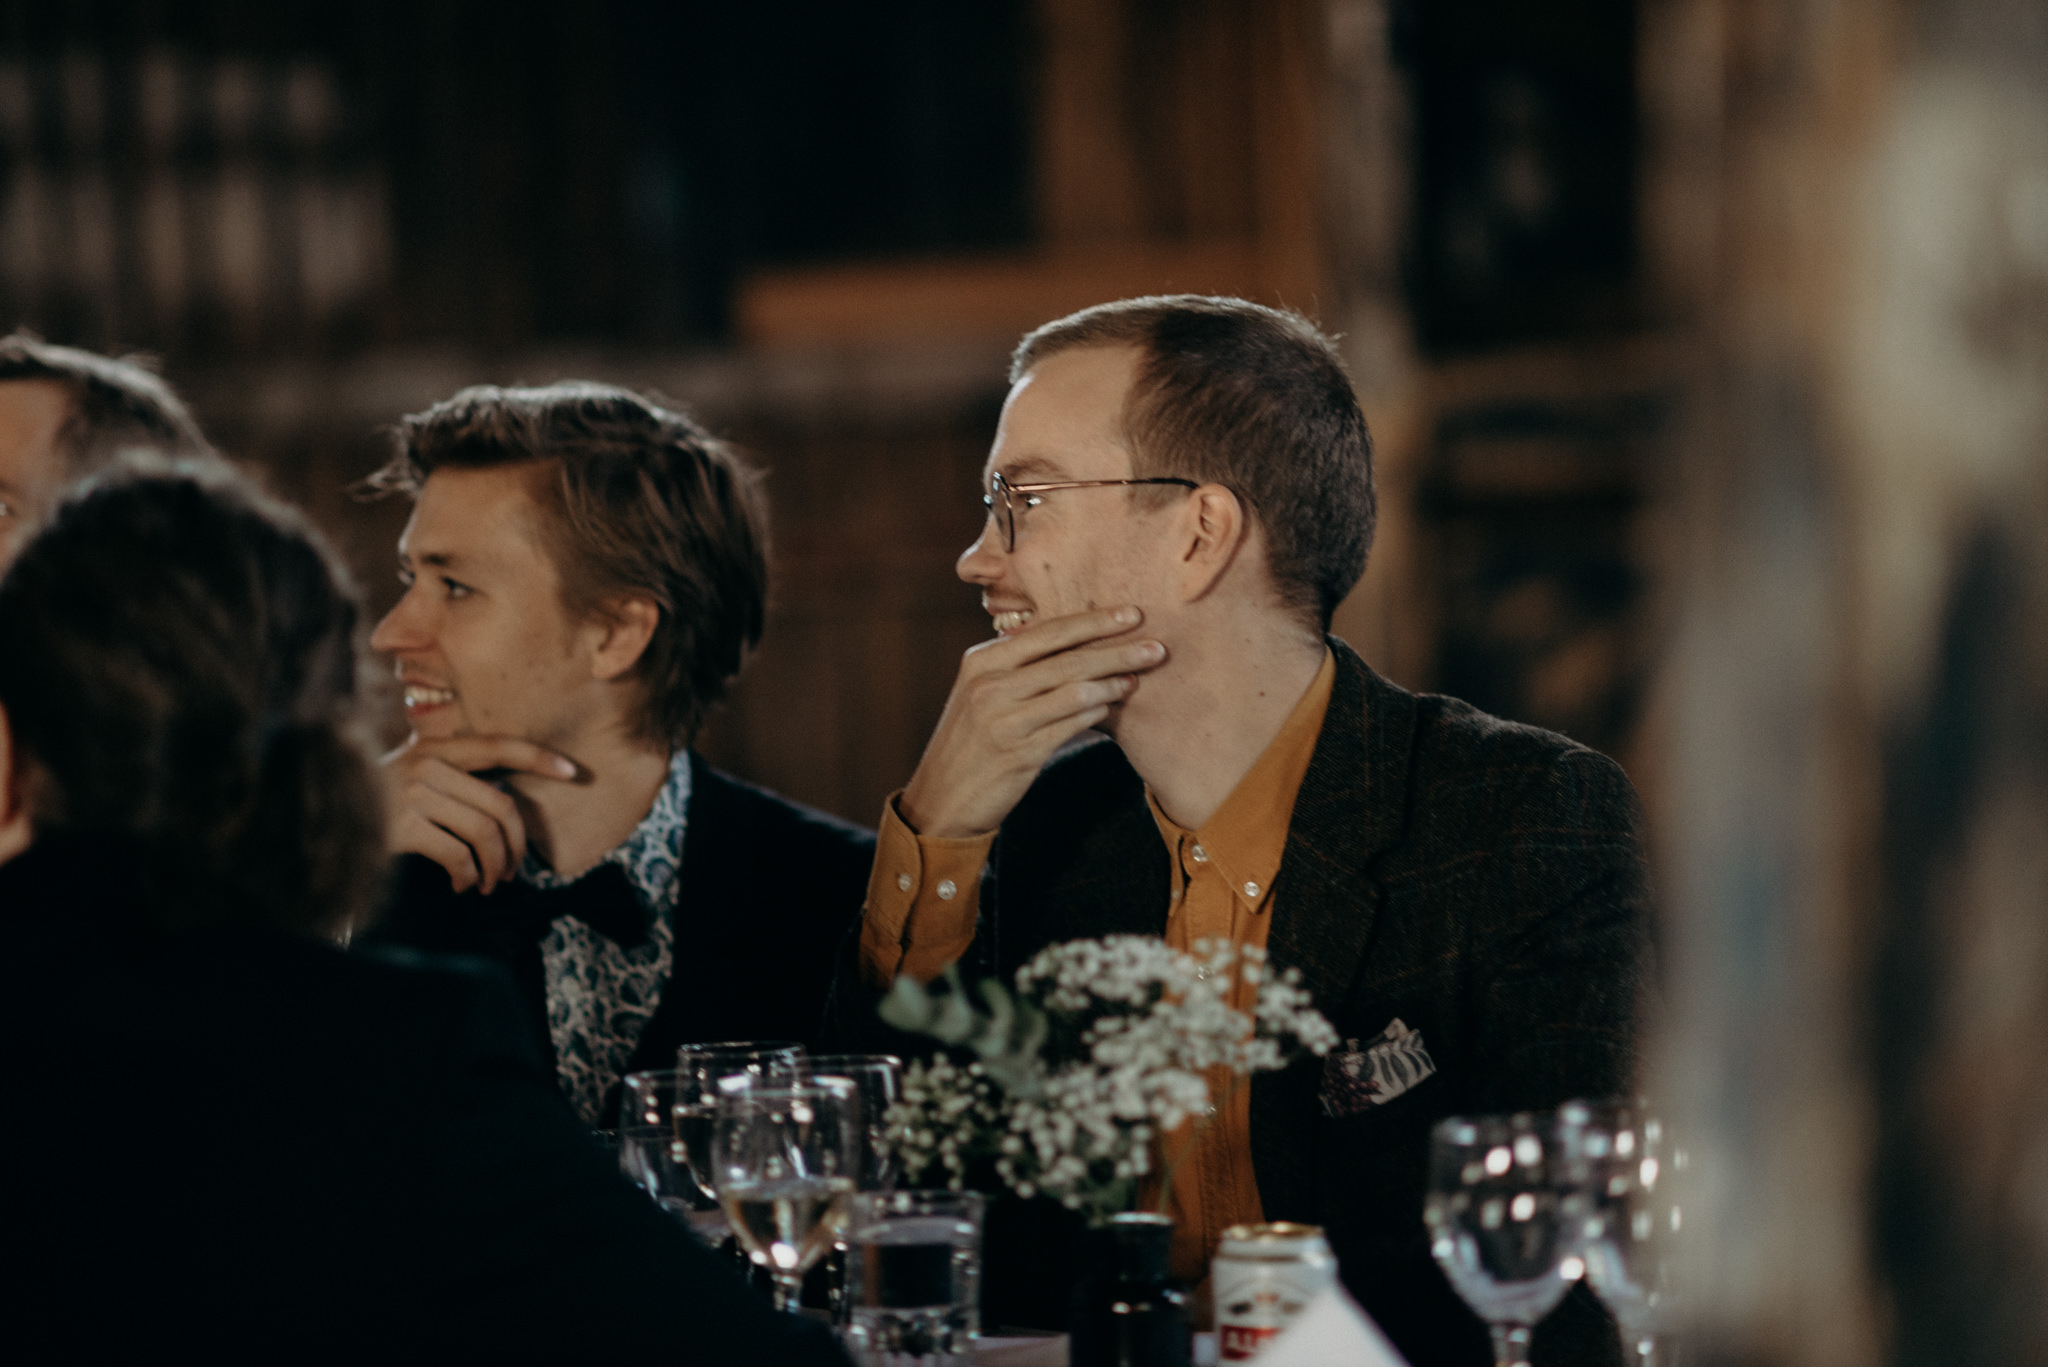 Guests listening and smiling during speeches at Valkosaaren Telakka wedding reception